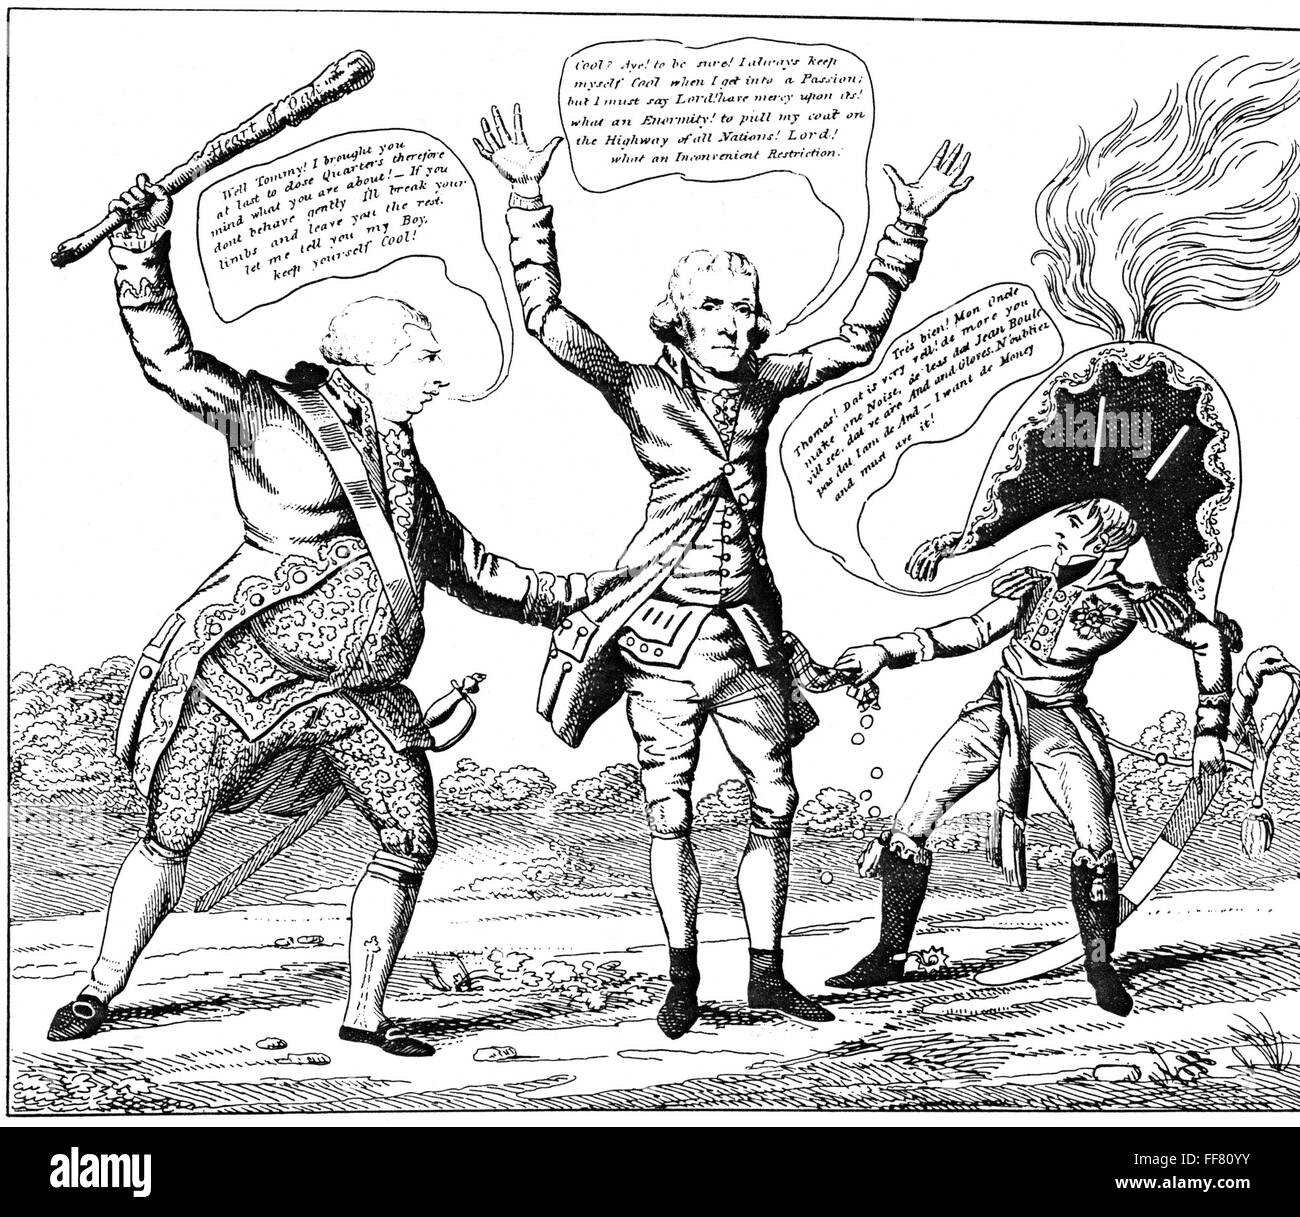 1807 Thomas Jefferson - Embargo Act of 1807   State of the Union ...